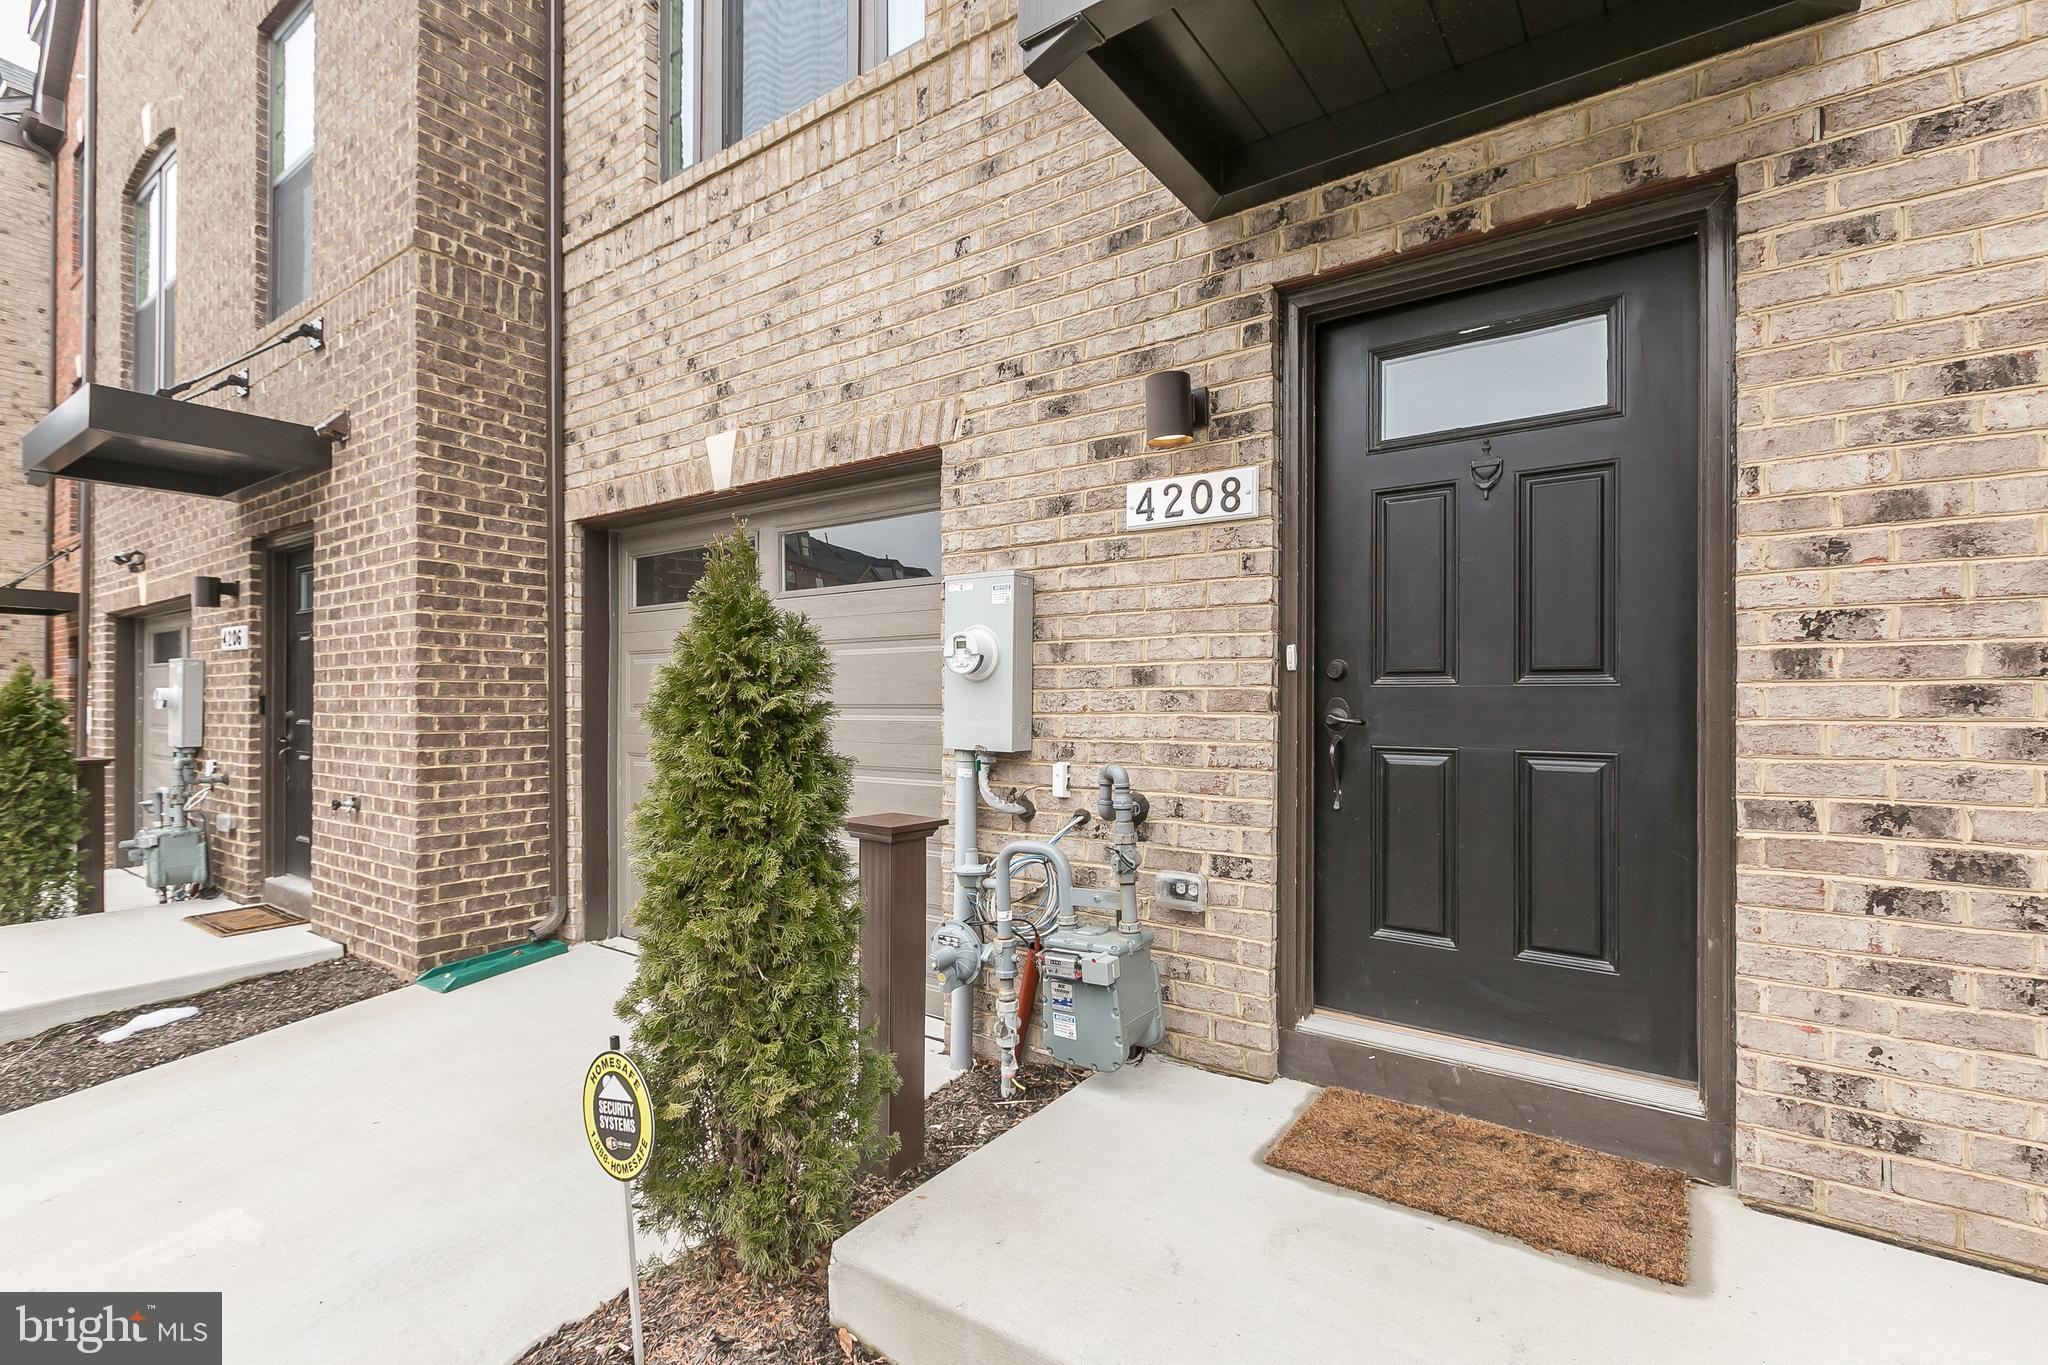 4208 SKYVIEW, BALTIMORE, MD 21211